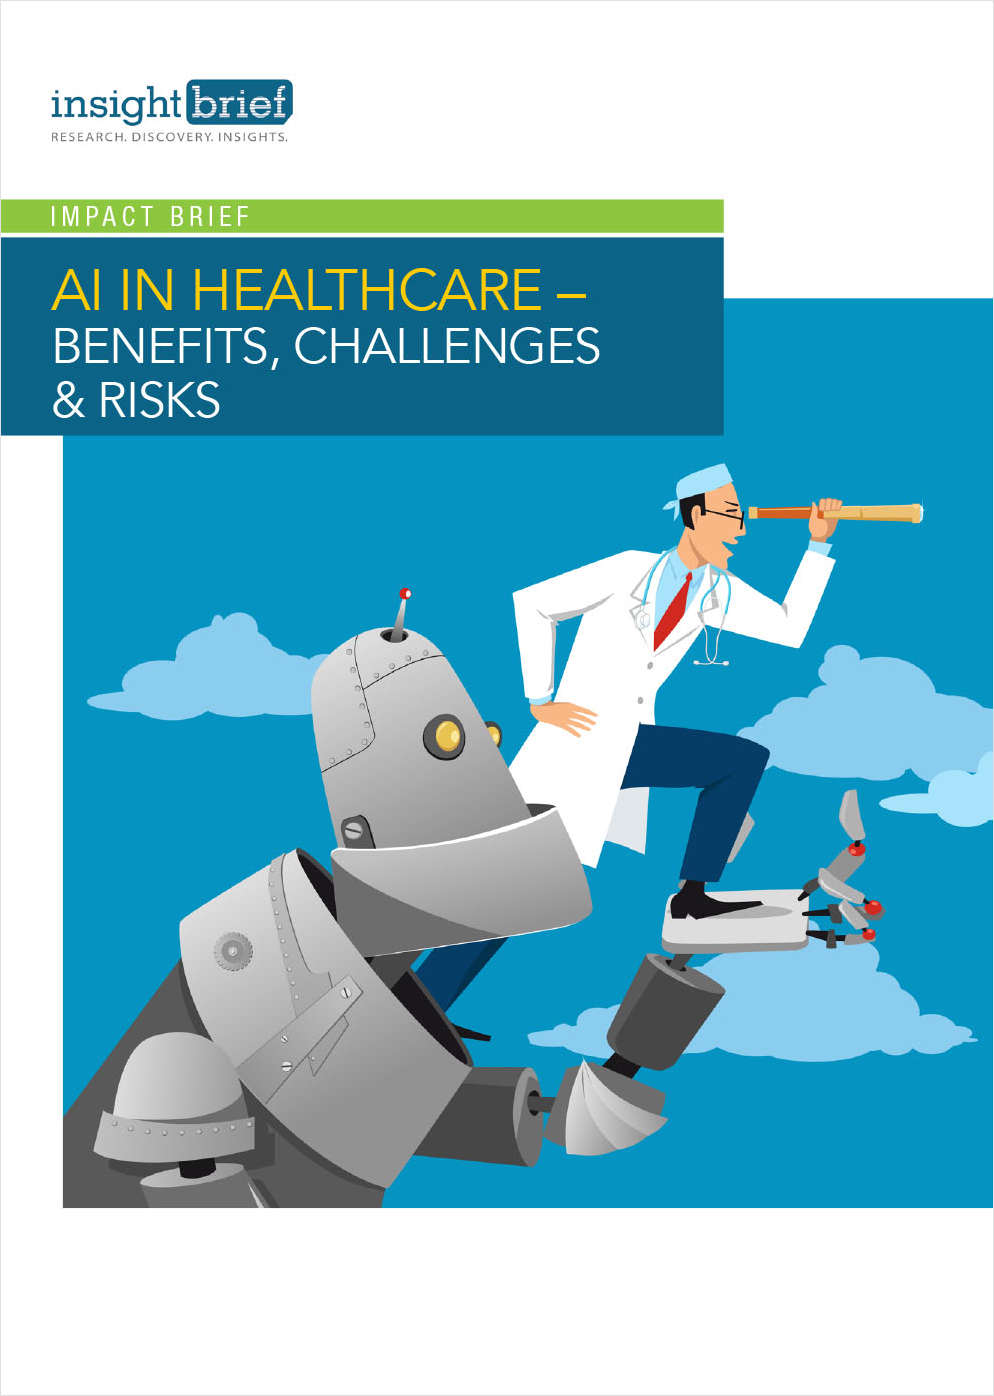 AI in Healthcare - Benefits, Challenges & Risks